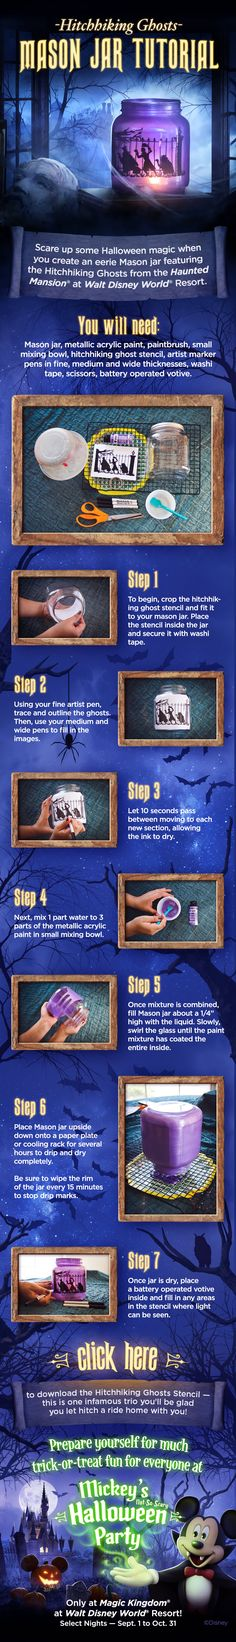 Haunted Mansion Hitchhiking Ghost DIY mason jar tutorial from Walt Disney World